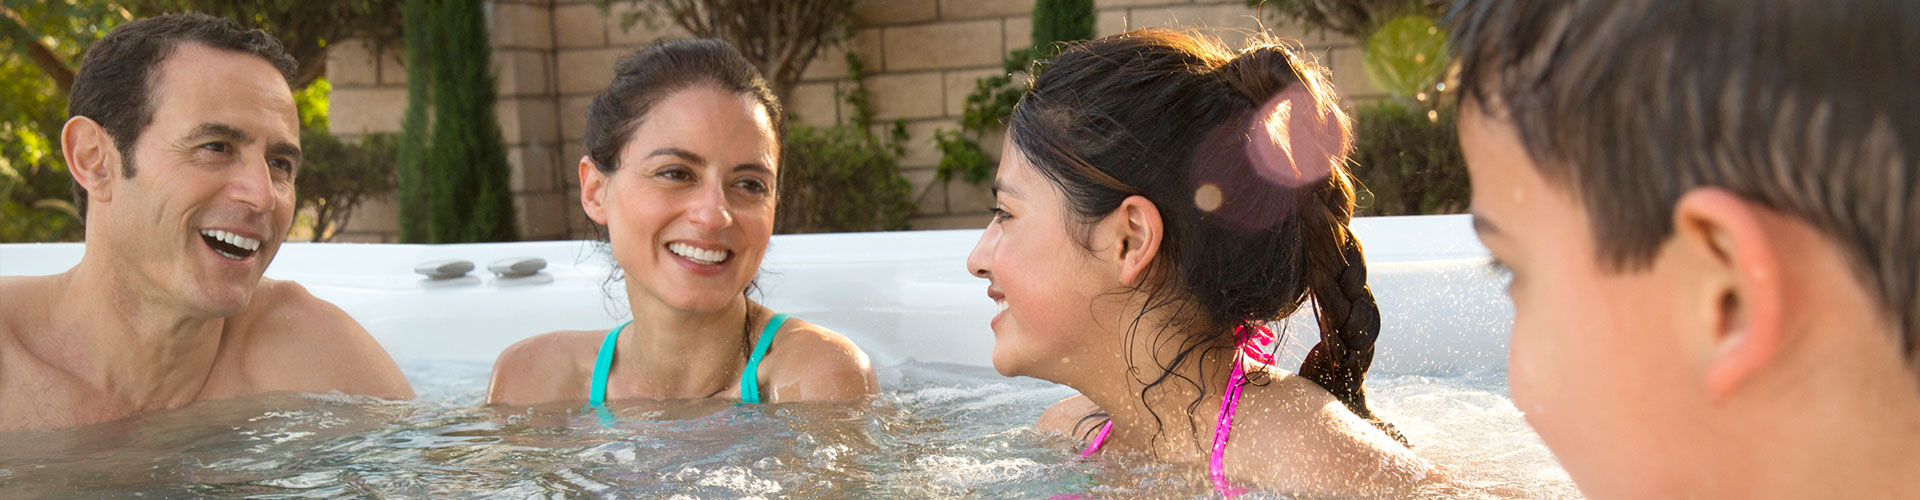 Hot Tub, Swims Spa Astoria Dealer, Supports Family Wellness Month